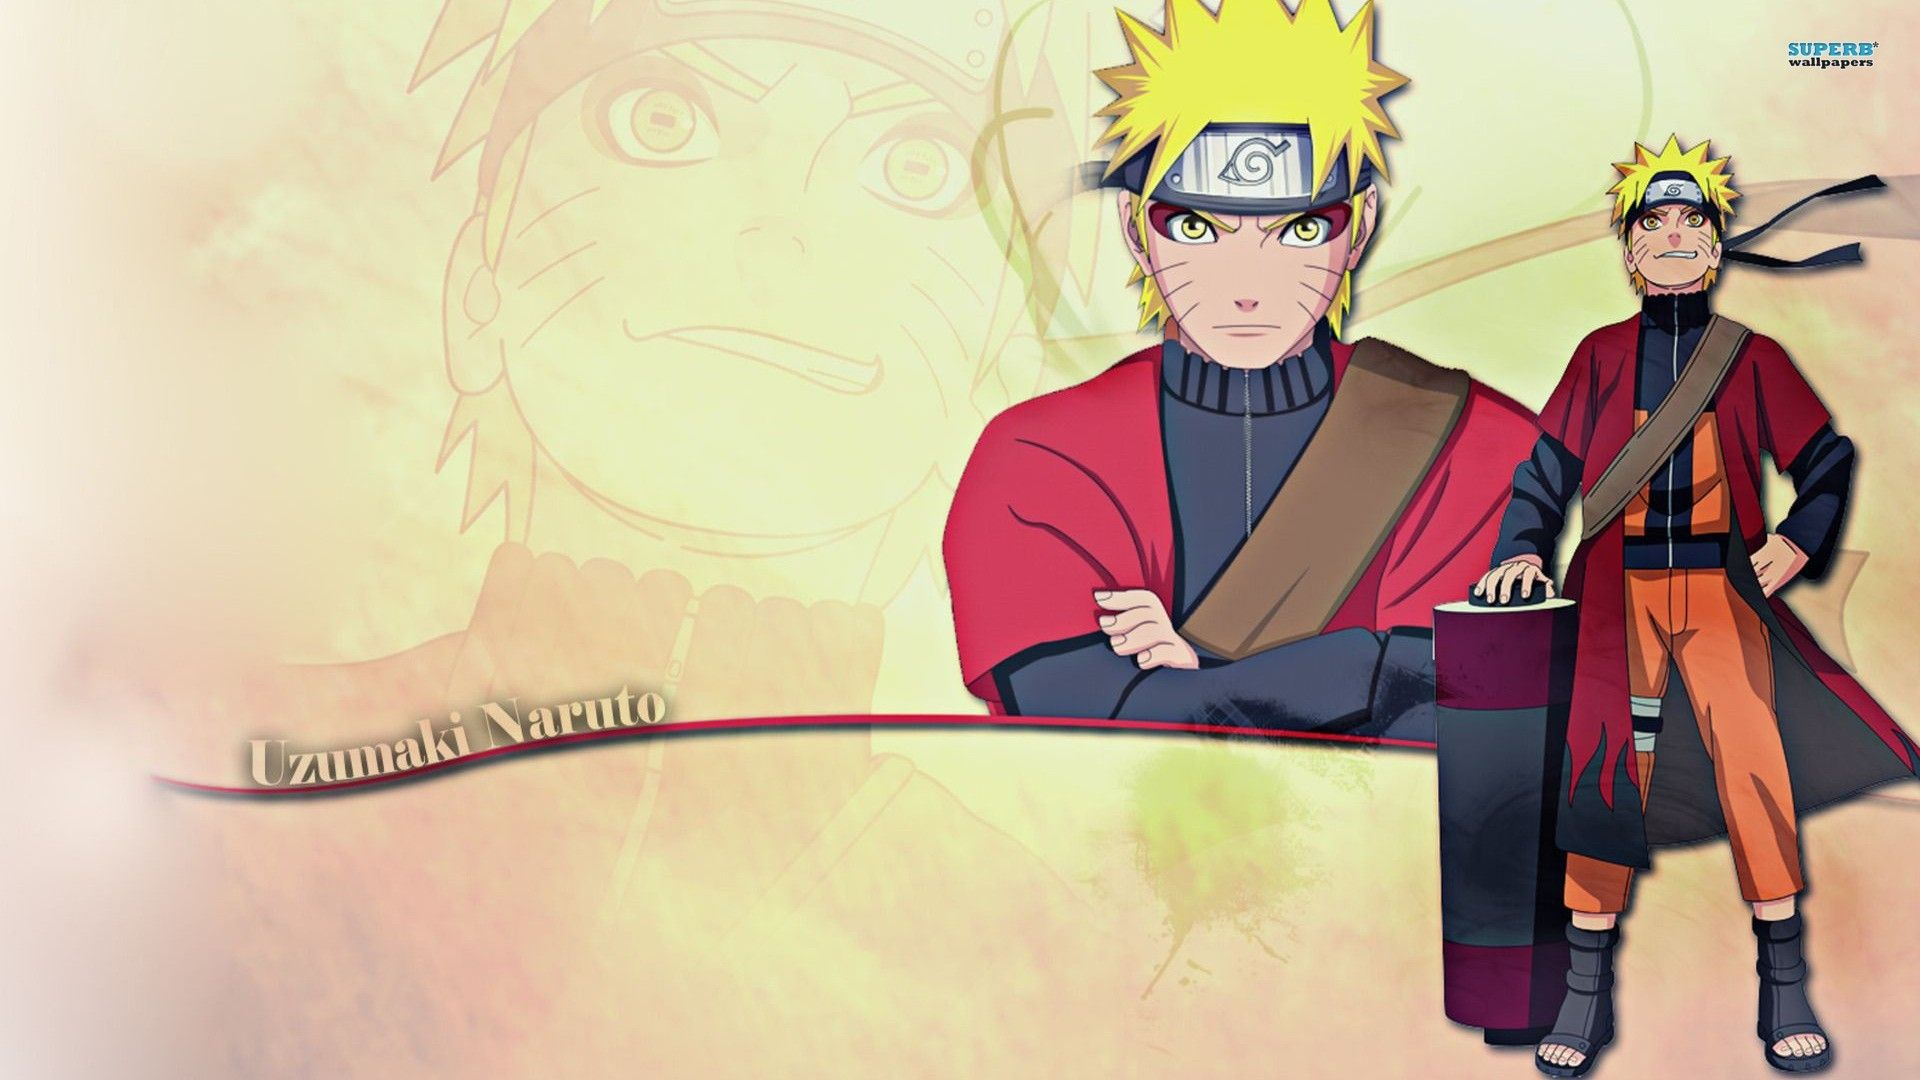 Naruto Uzumaki Sage Mode Wallpaper Widescreen Naruto Uzumaki